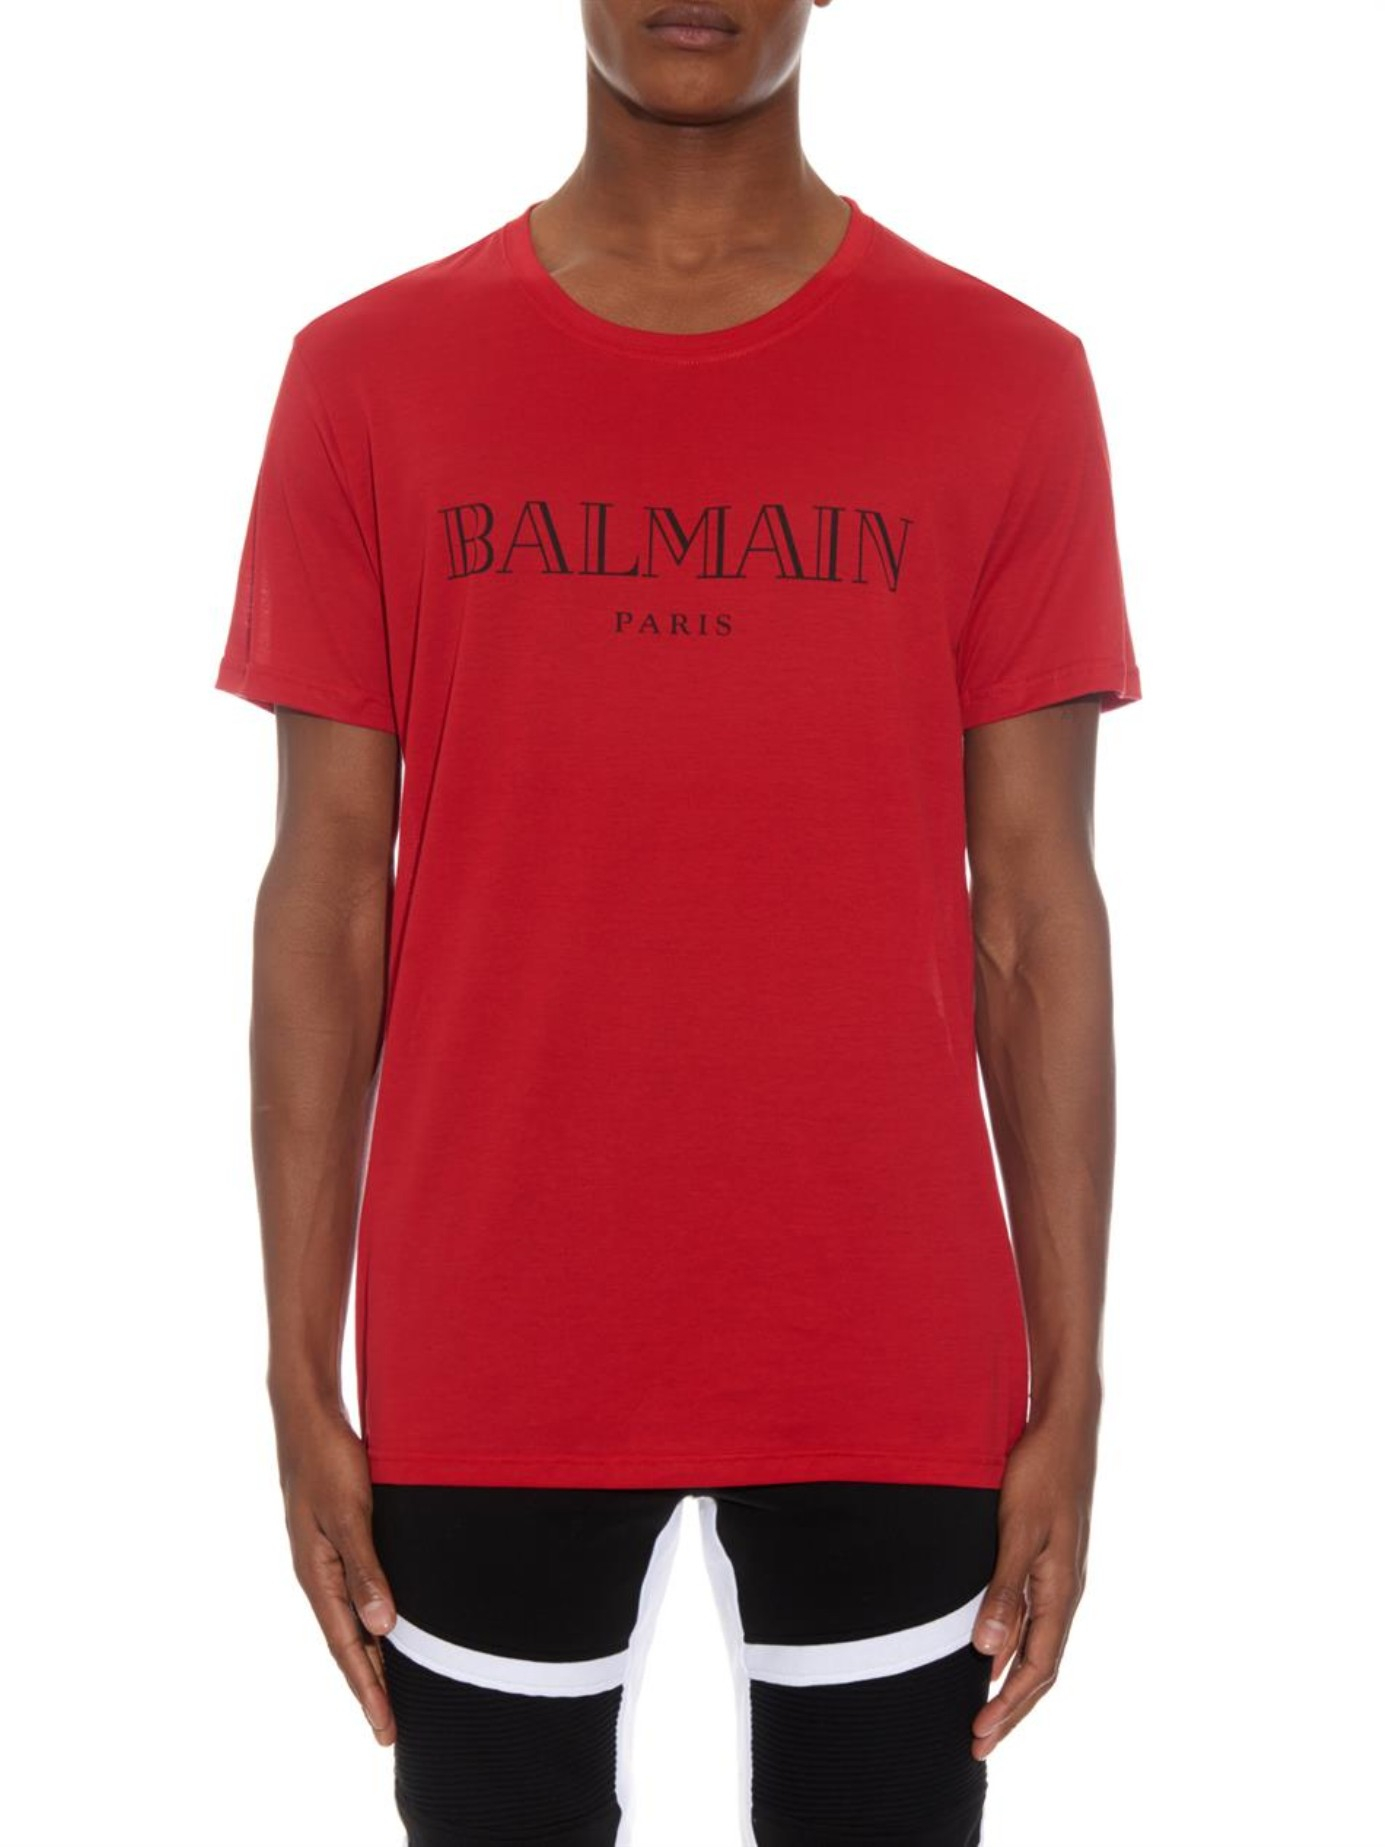 balmain logo print cotton t shirt in red for men lyst. Black Bedroom Furniture Sets. Home Design Ideas